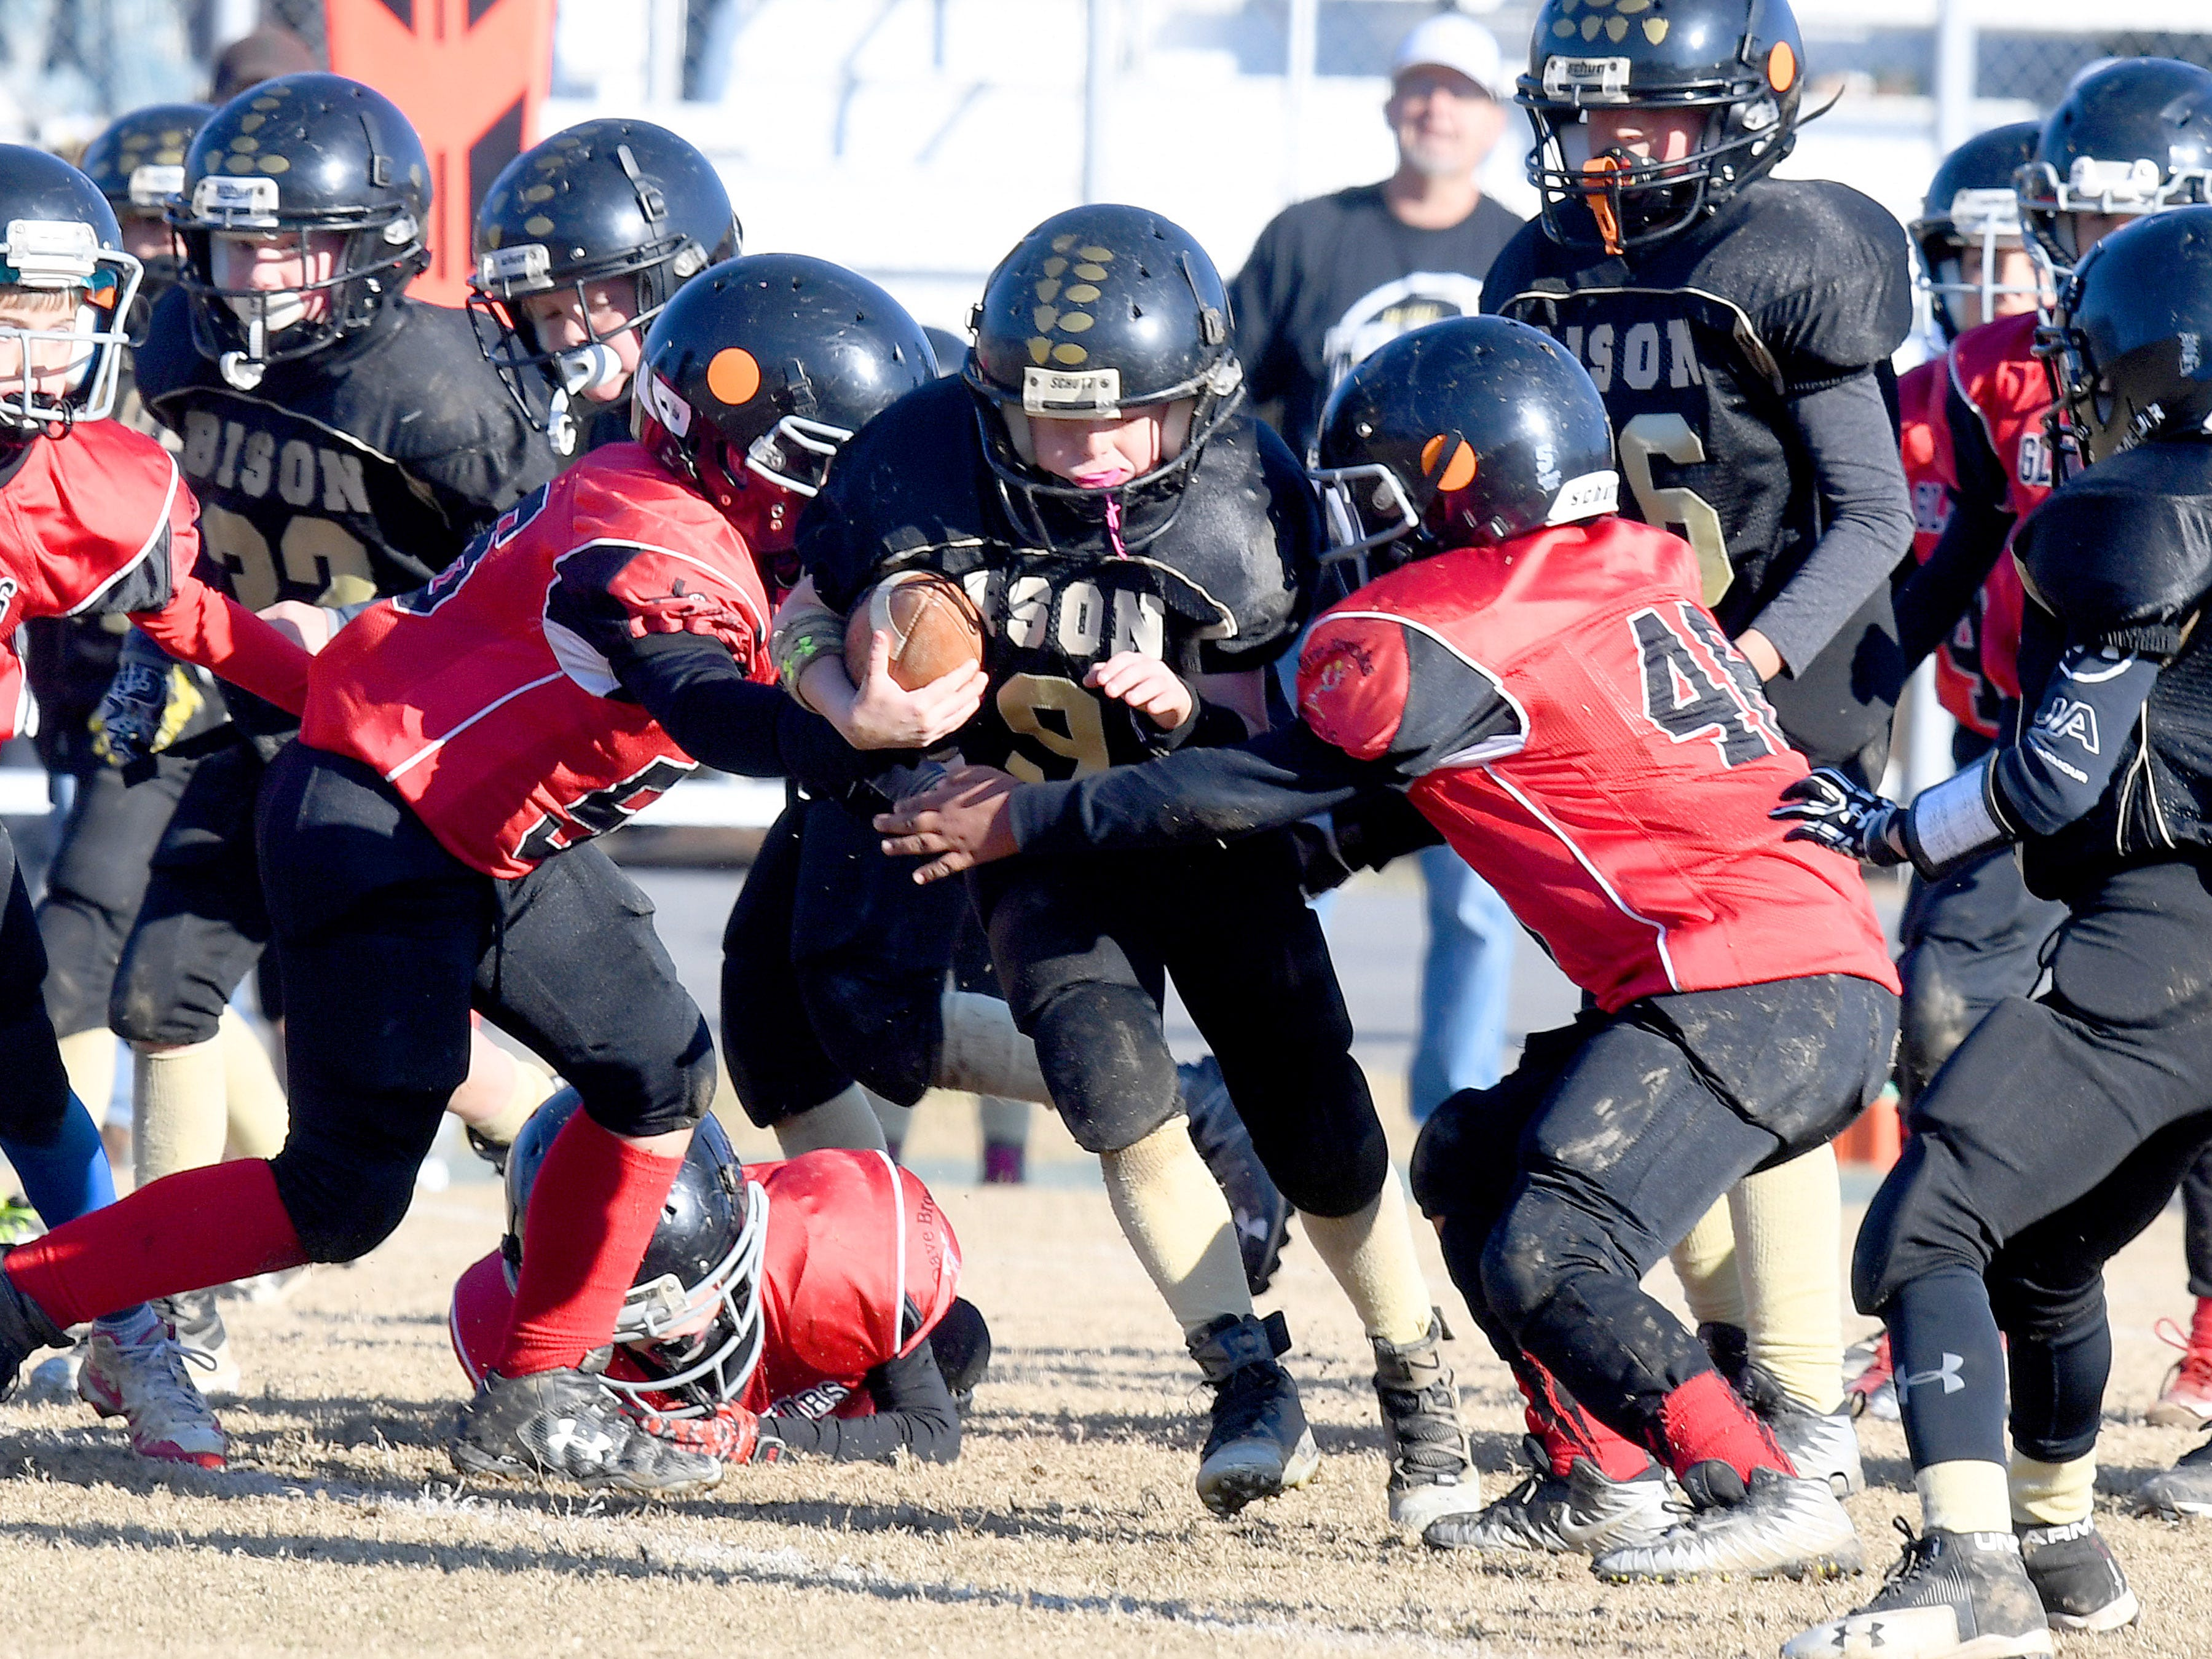 Buffalo Gap's Brandon Argenbright tries to break through the line with the ball during the Augusta County Quarterback Club Midget Super Bowl in Fishersville on Sunday, Nov. 11, 2018. Riverheads beat Buffalo Gap, 25-6.